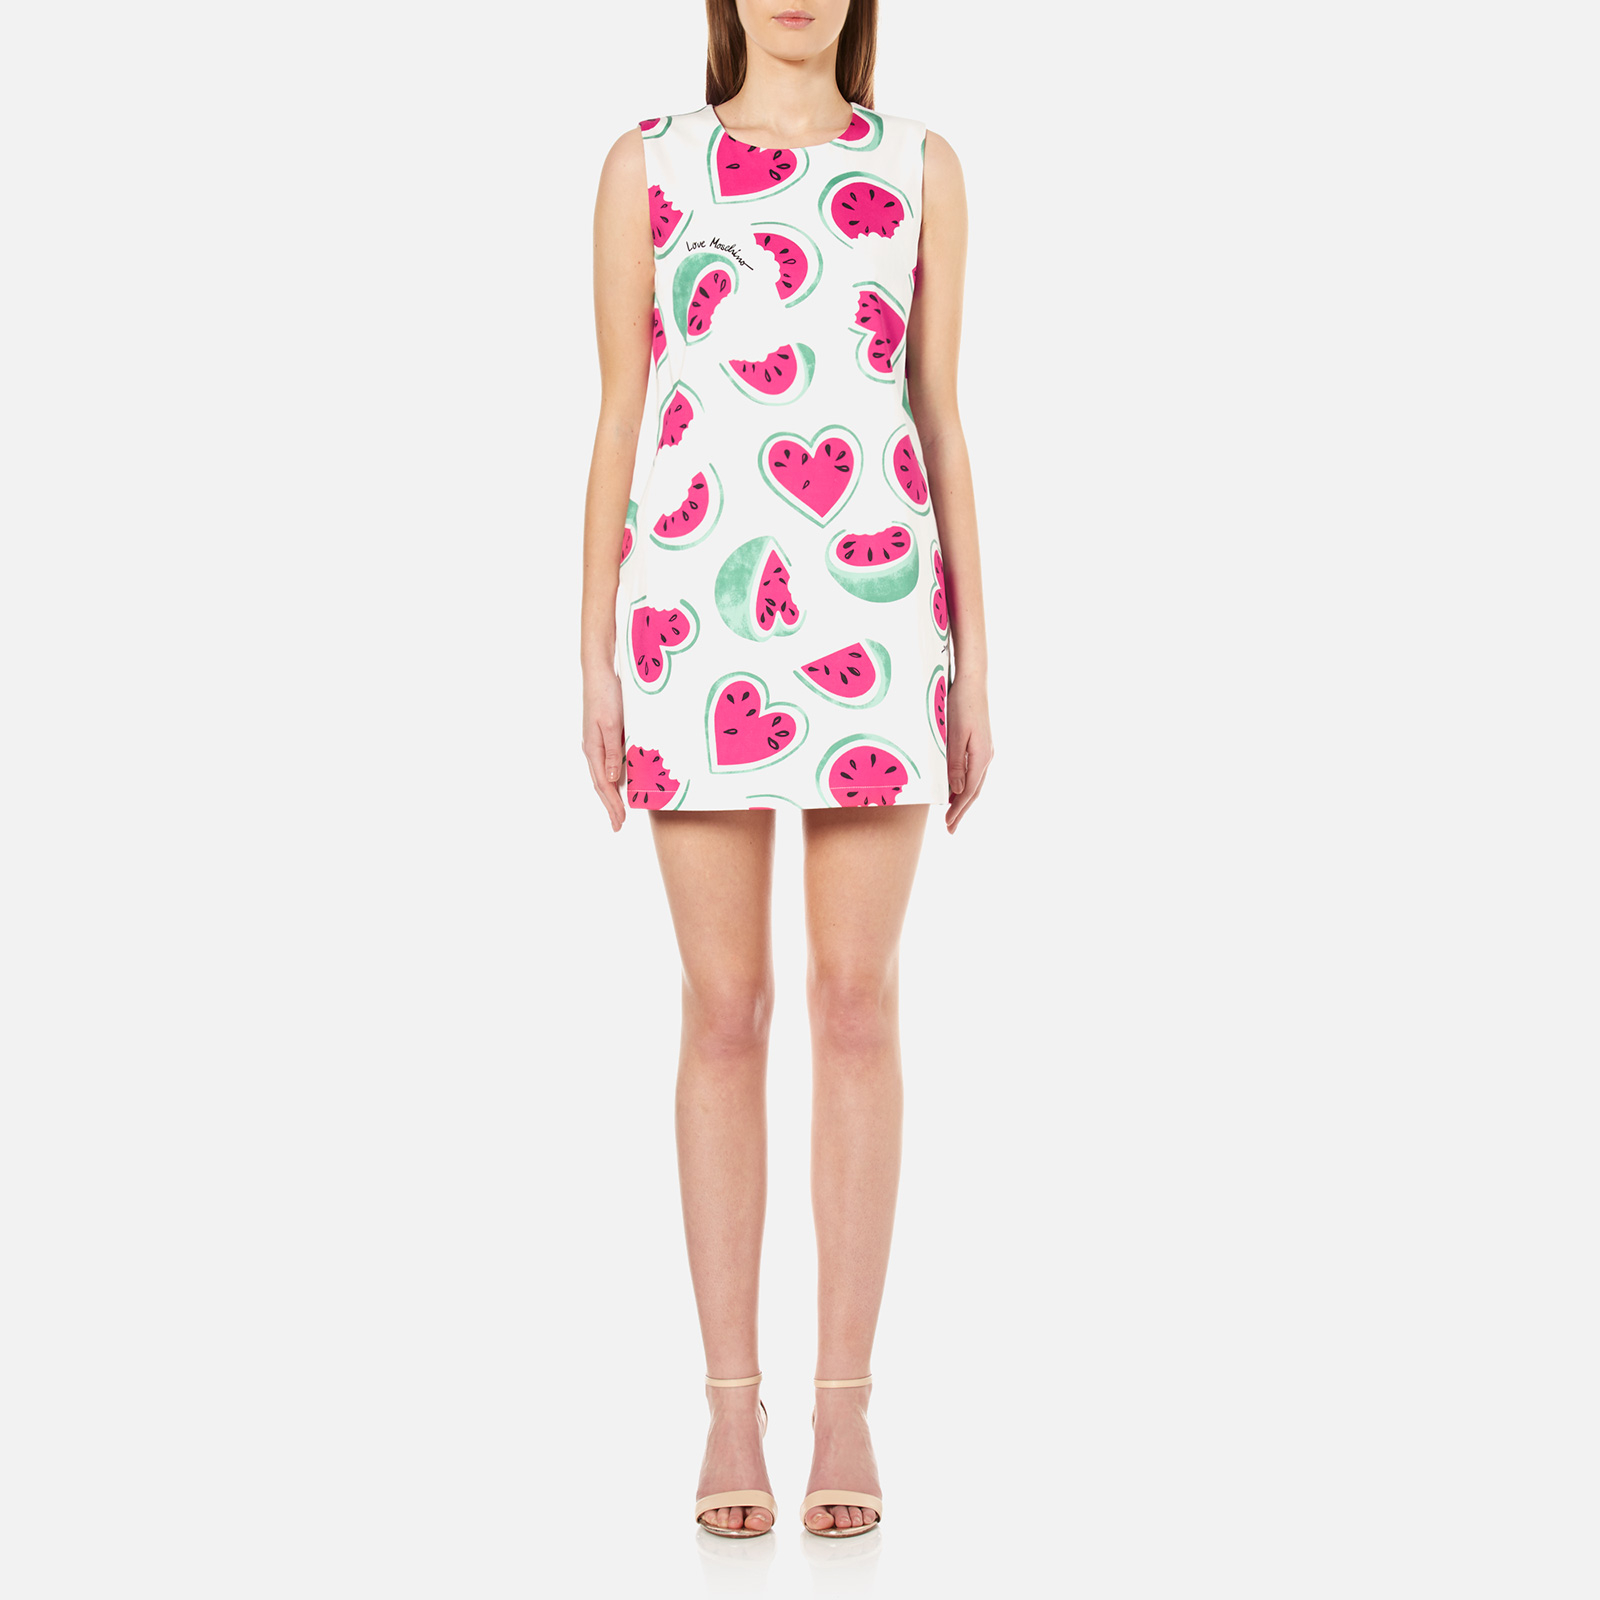 4a3b18c66c781 Love Moschino Women's All Over Heart Watermelon Print Shift Dress - White/Watermelon  - Free UK Delivery over £50